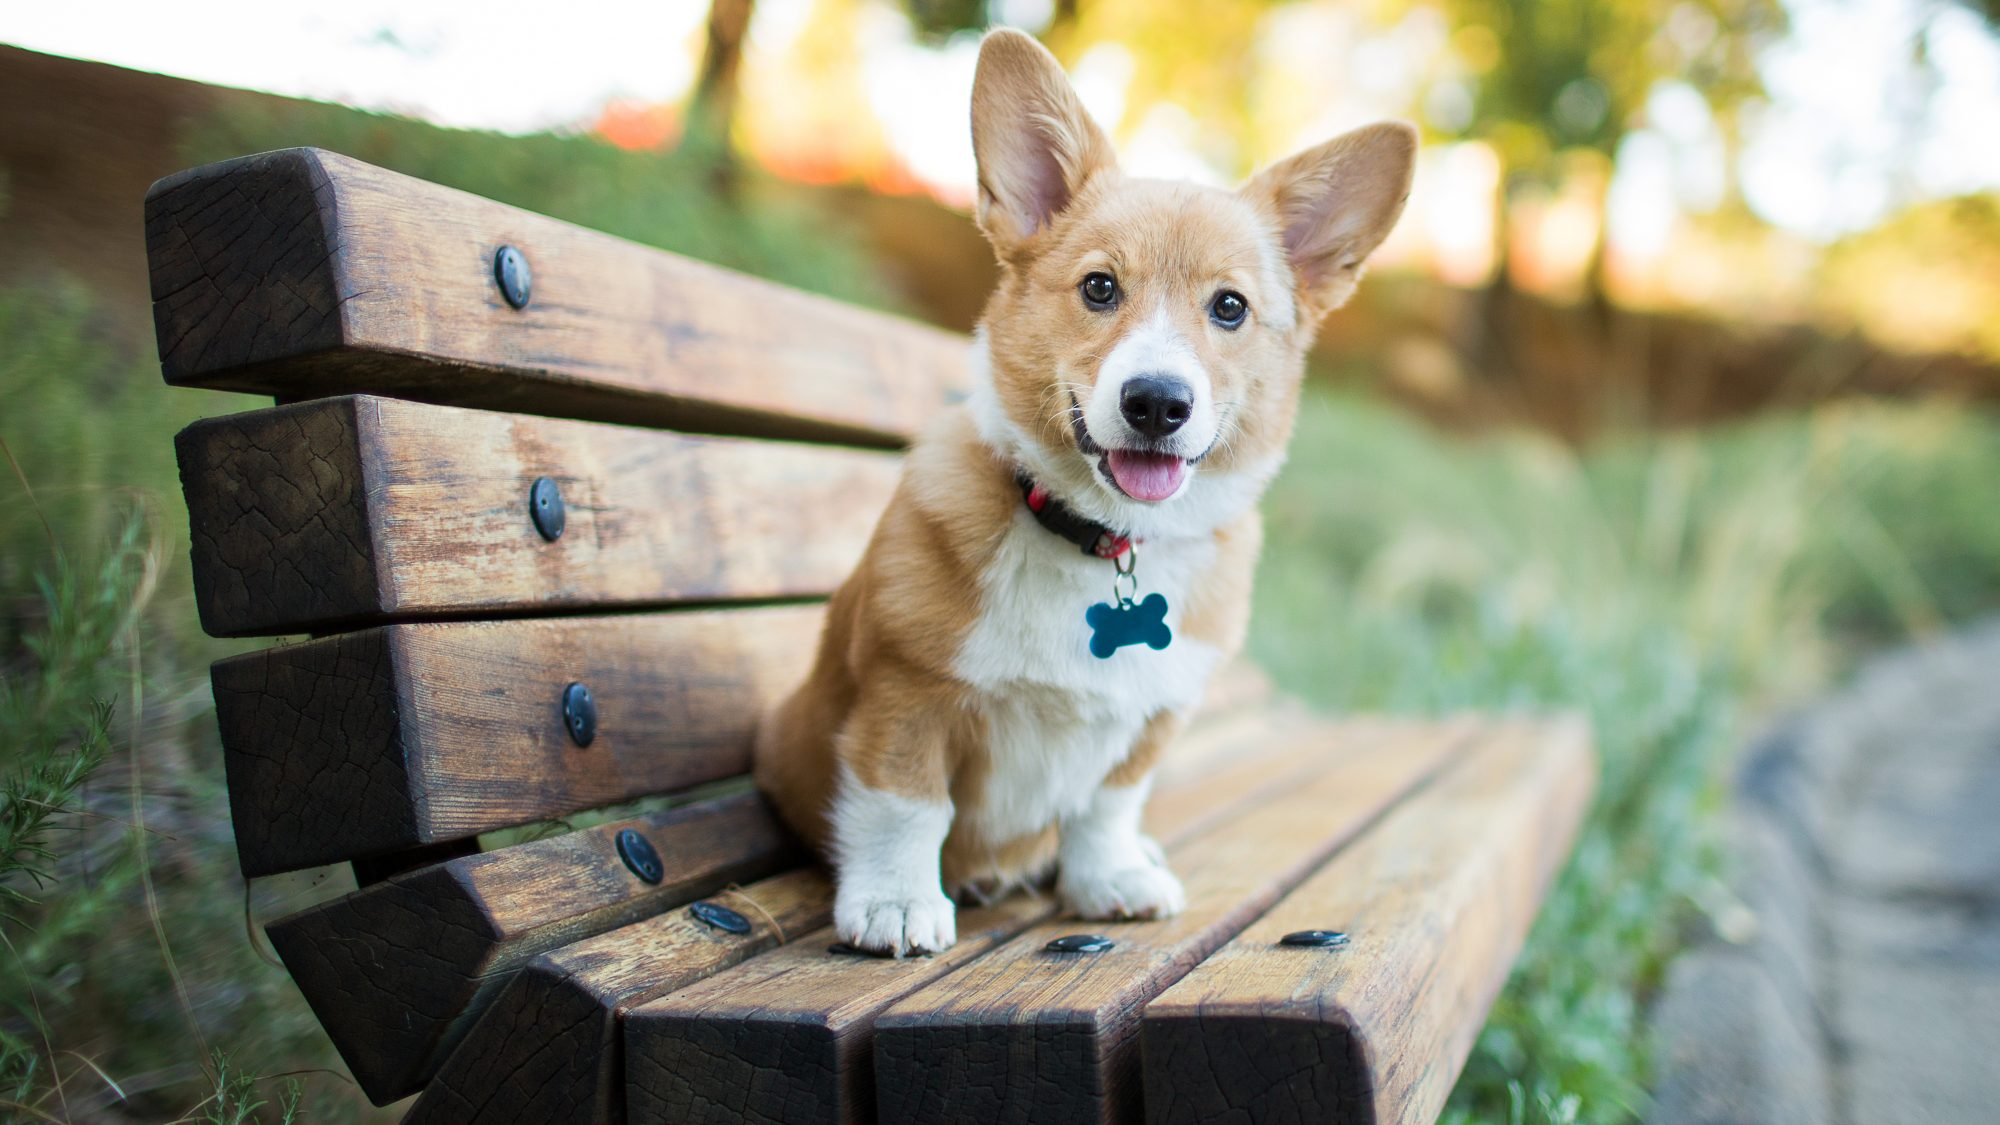 Cute dog sitting on a bench - top dog names and cat names